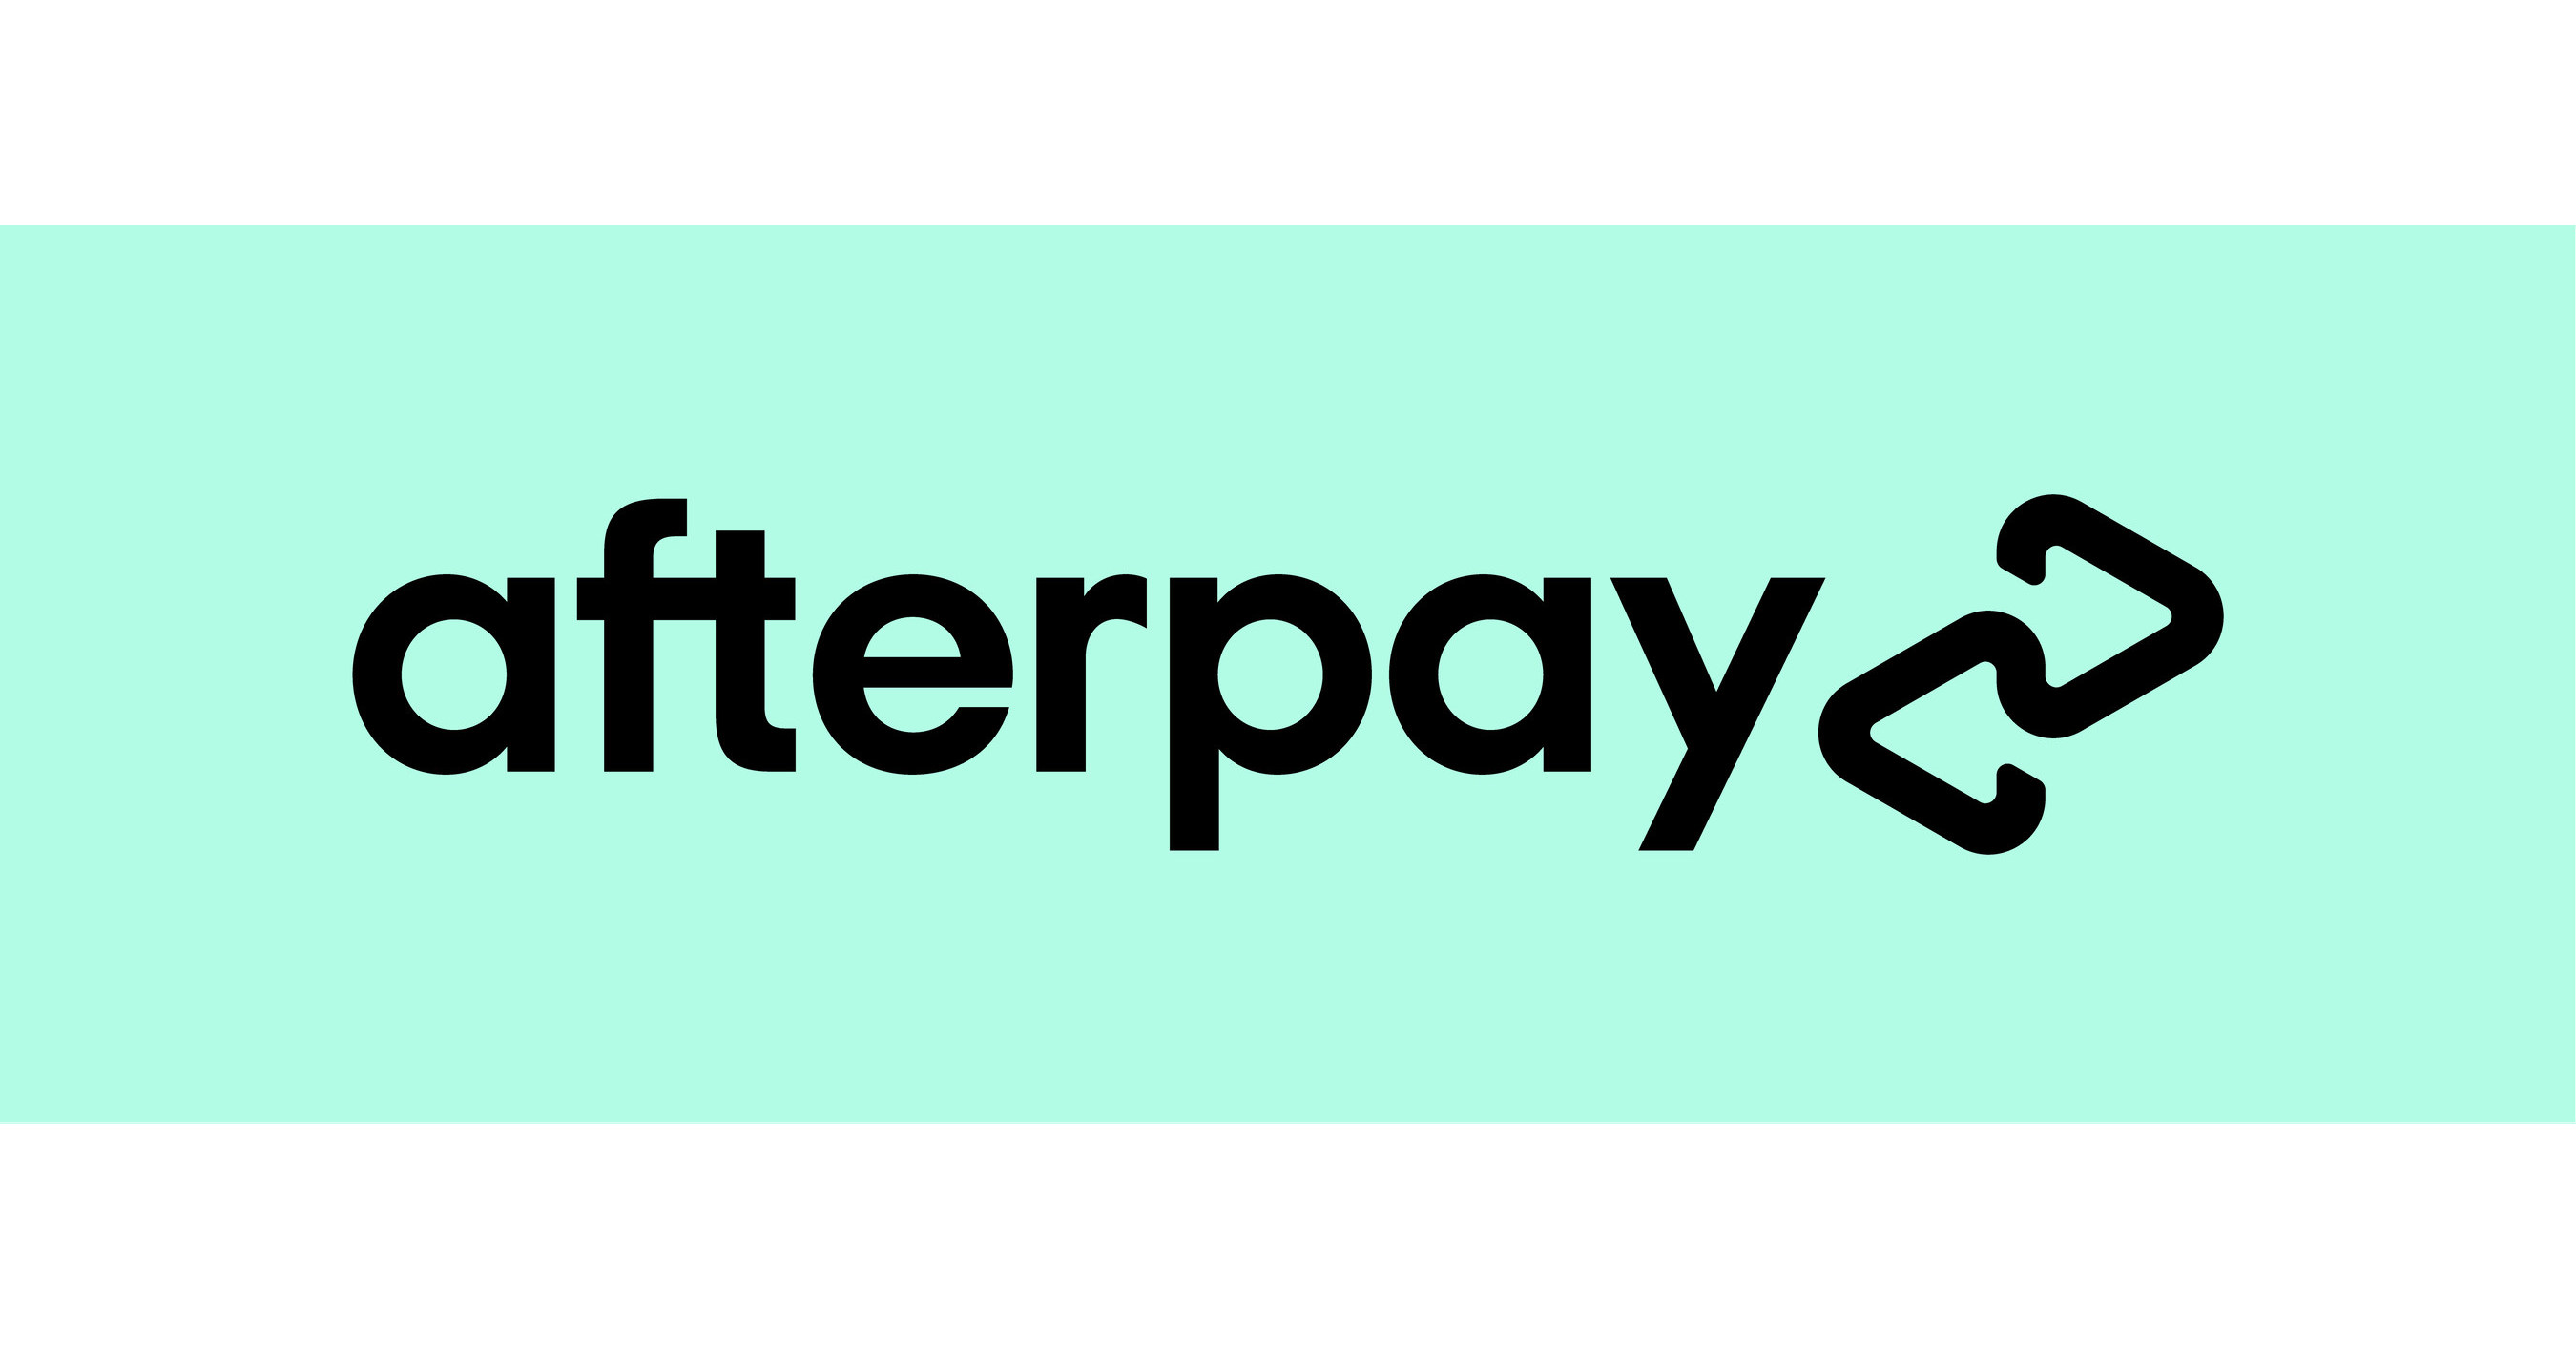 Afterpay Announces Full Year Results